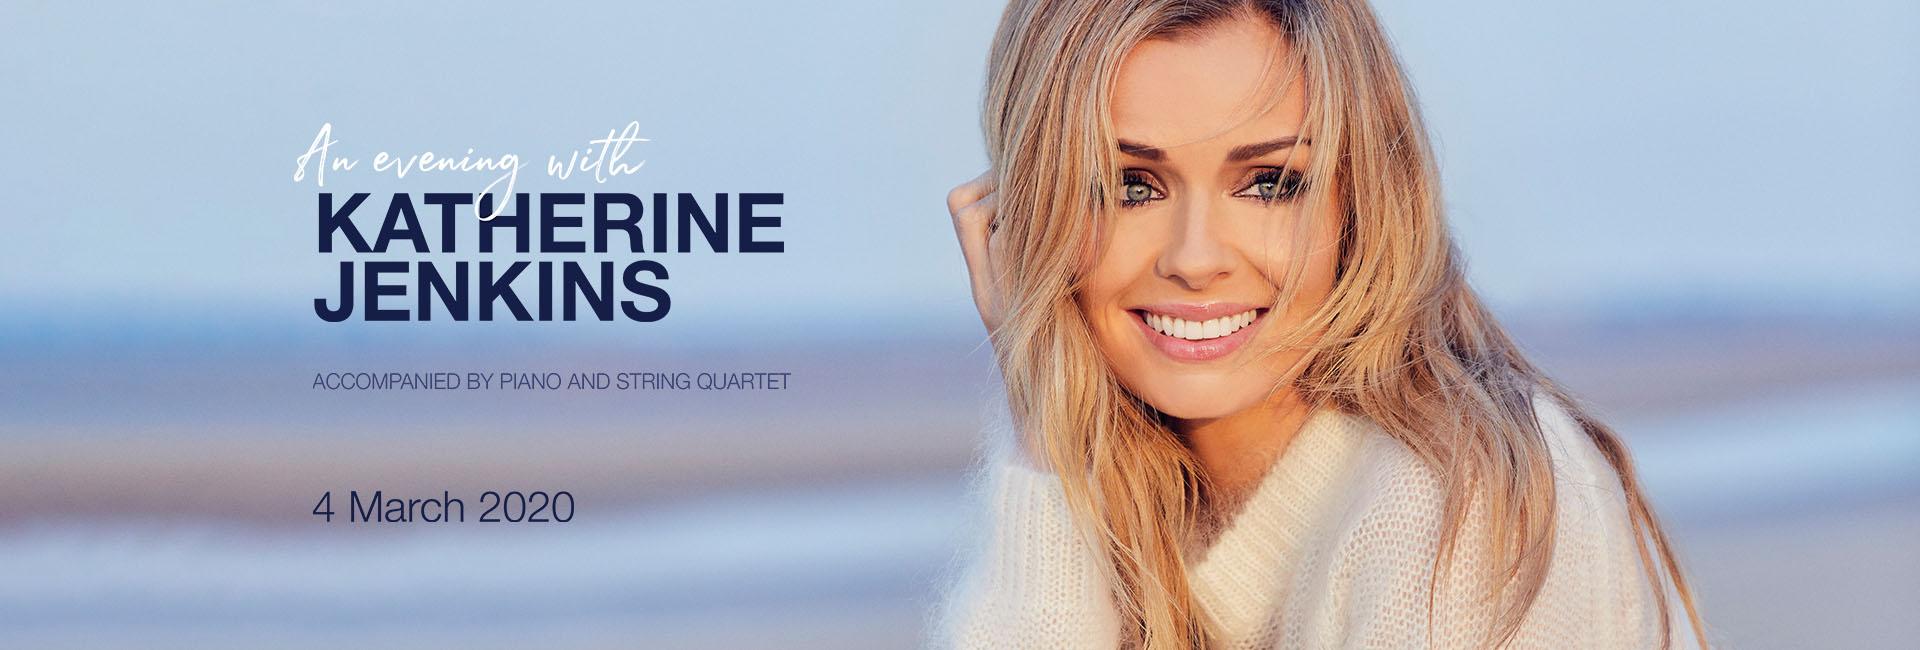 Katherine Jenkins Live on Mar 4th at Dubai Opera